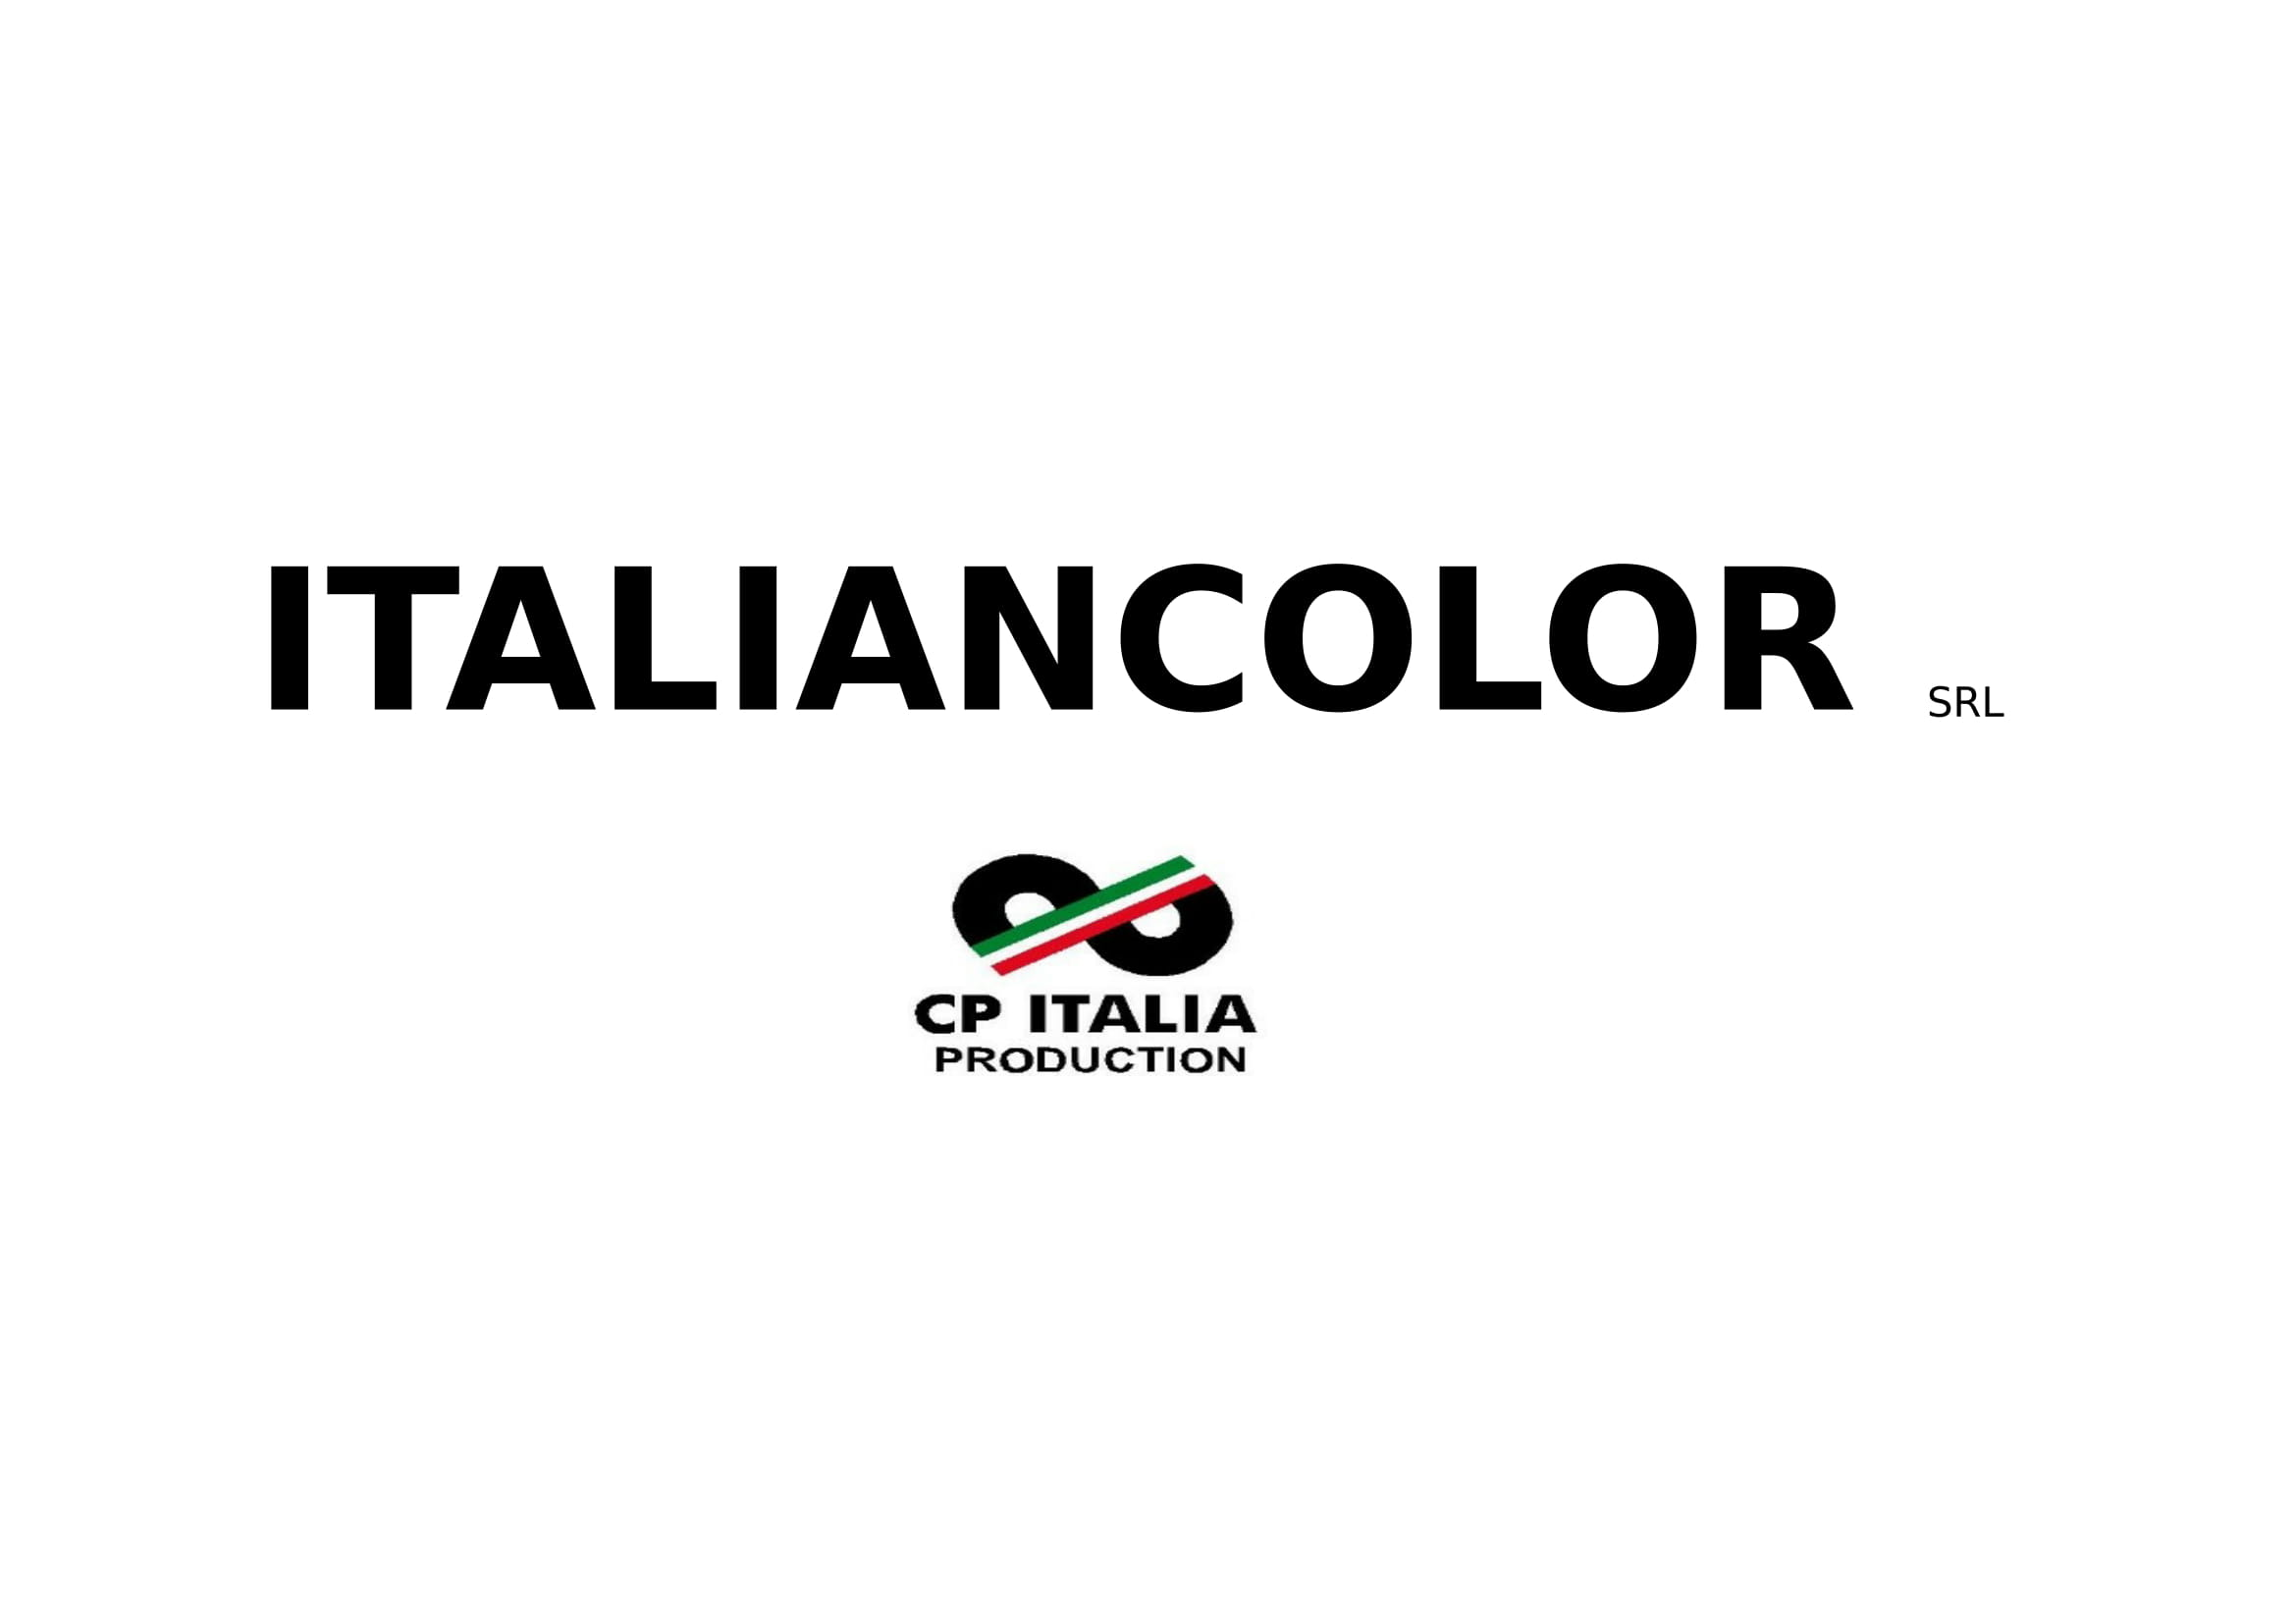 ITALIANCOLOR SRL